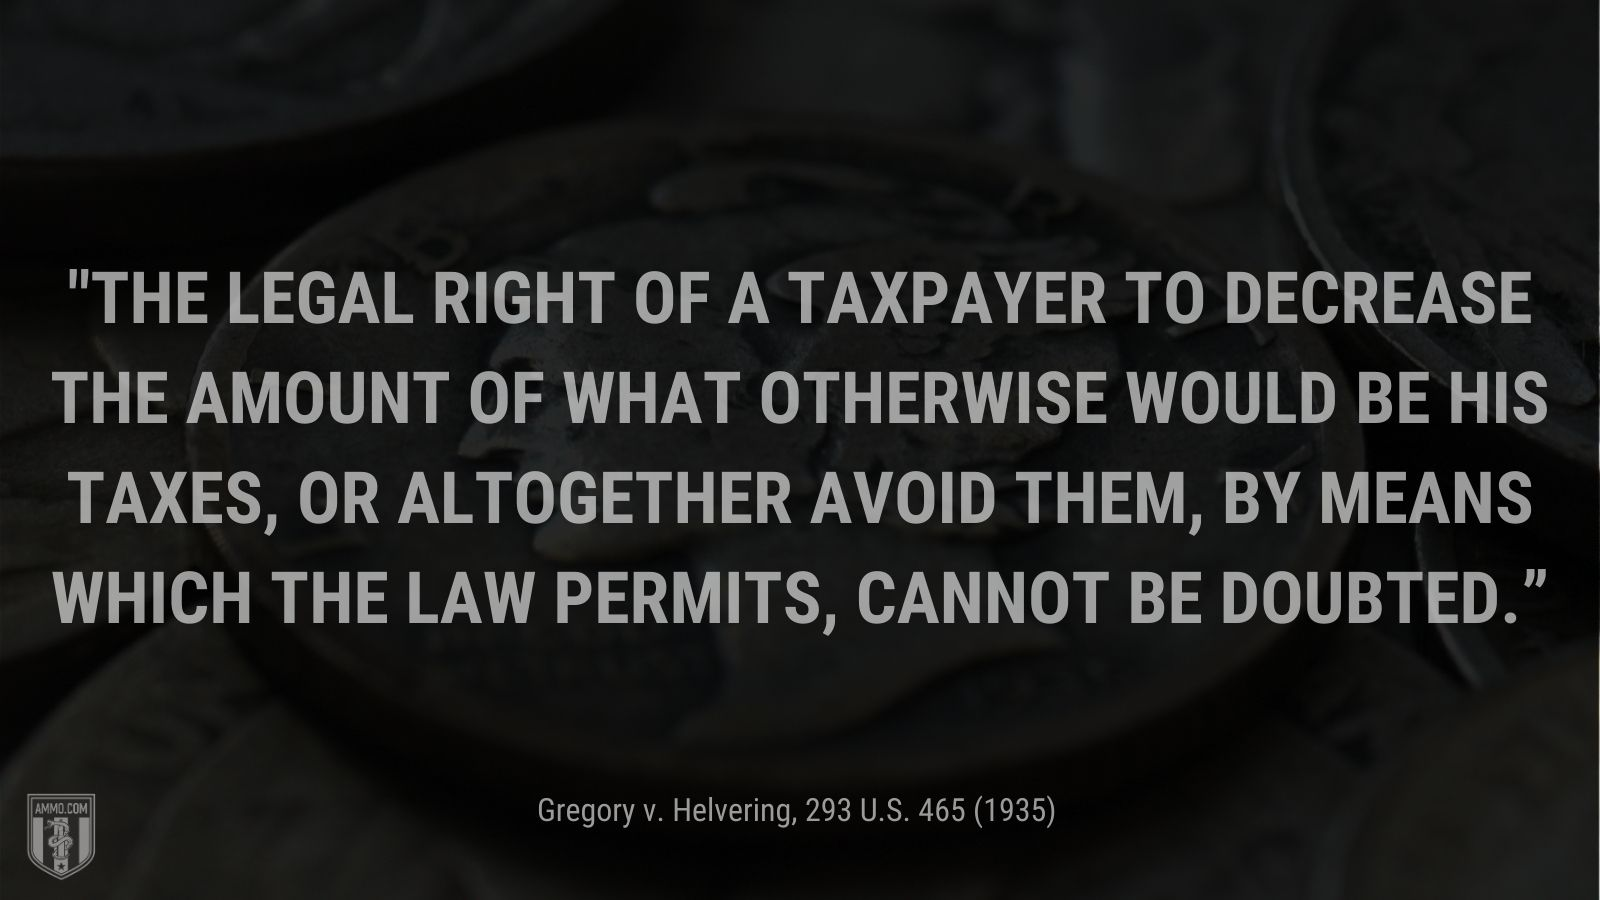 """""""The legal right of a taxpayer to decrease the amount of what otherwise would be his taxes, or altogether avoid them, by means which the law permits, cannot be doubted."""" - Gregory v. Helvering"""